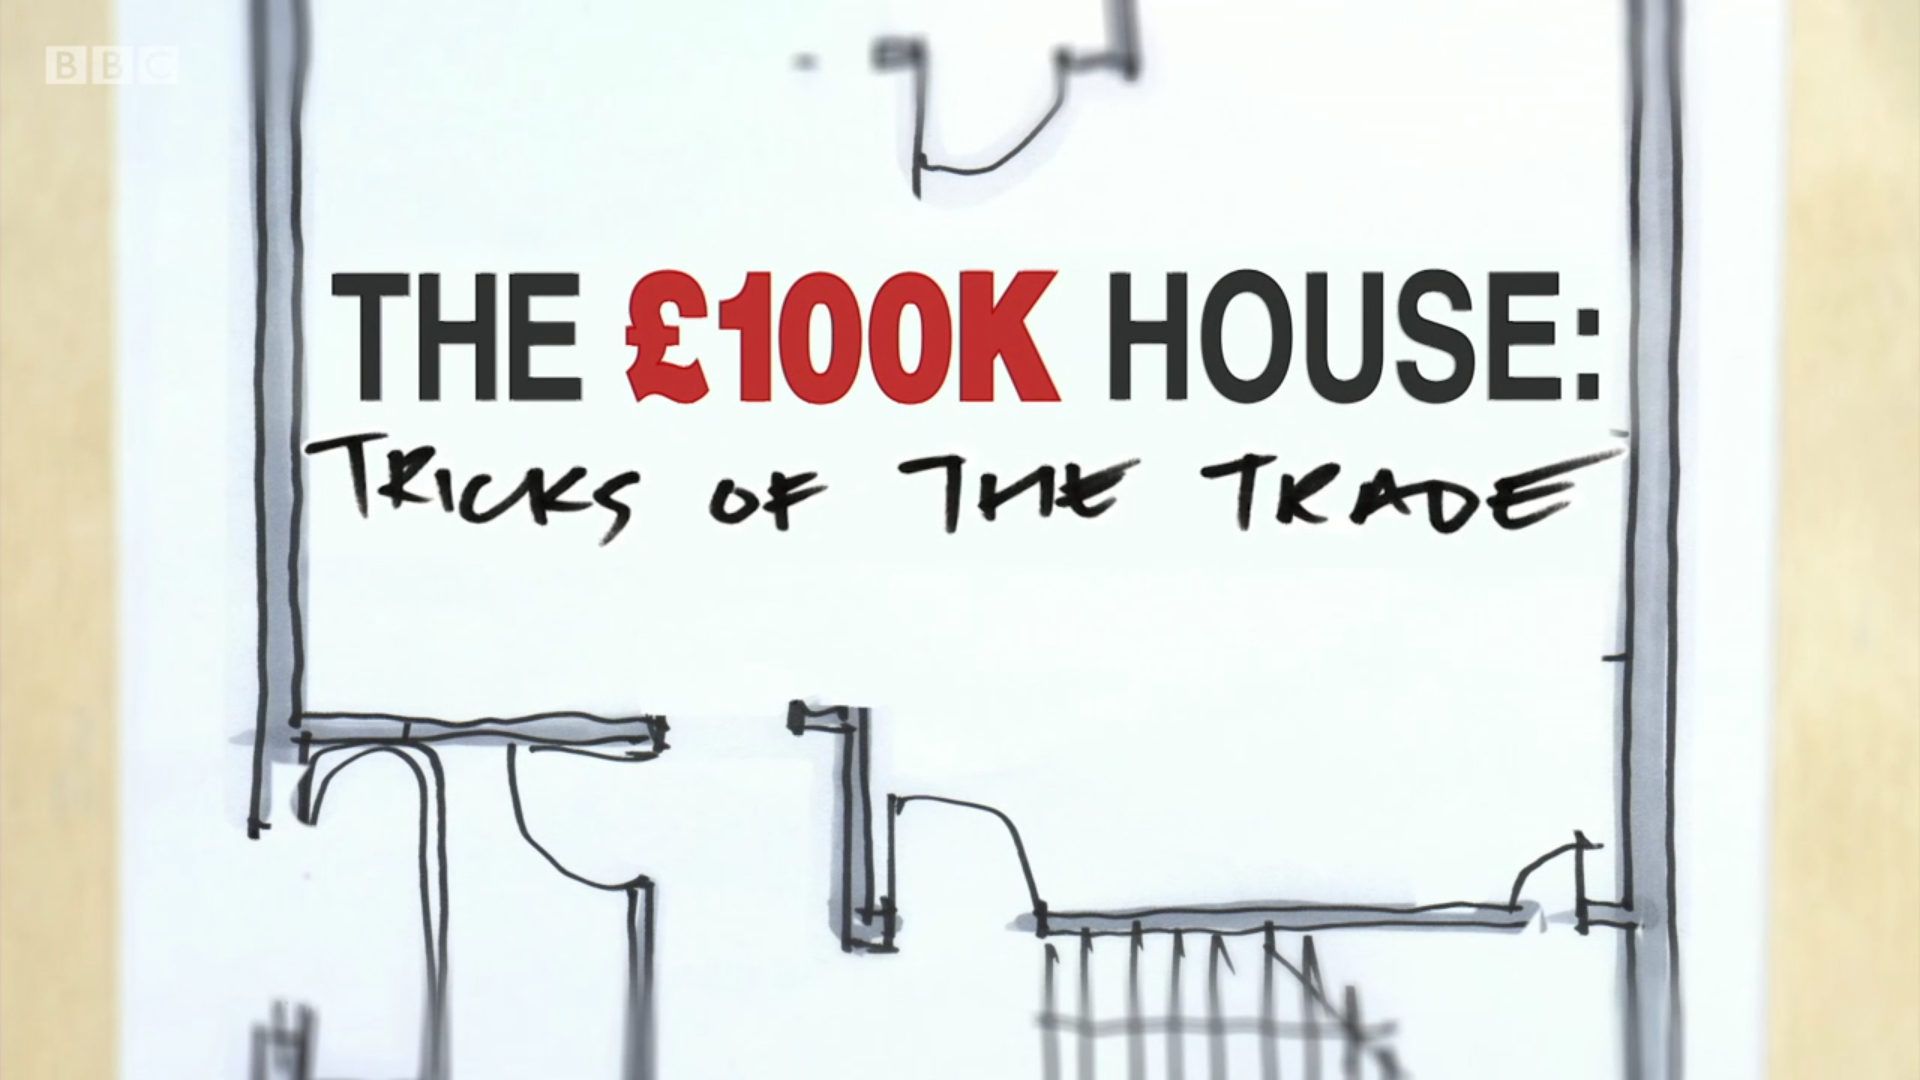 The £100k House: Tricks of the Trade